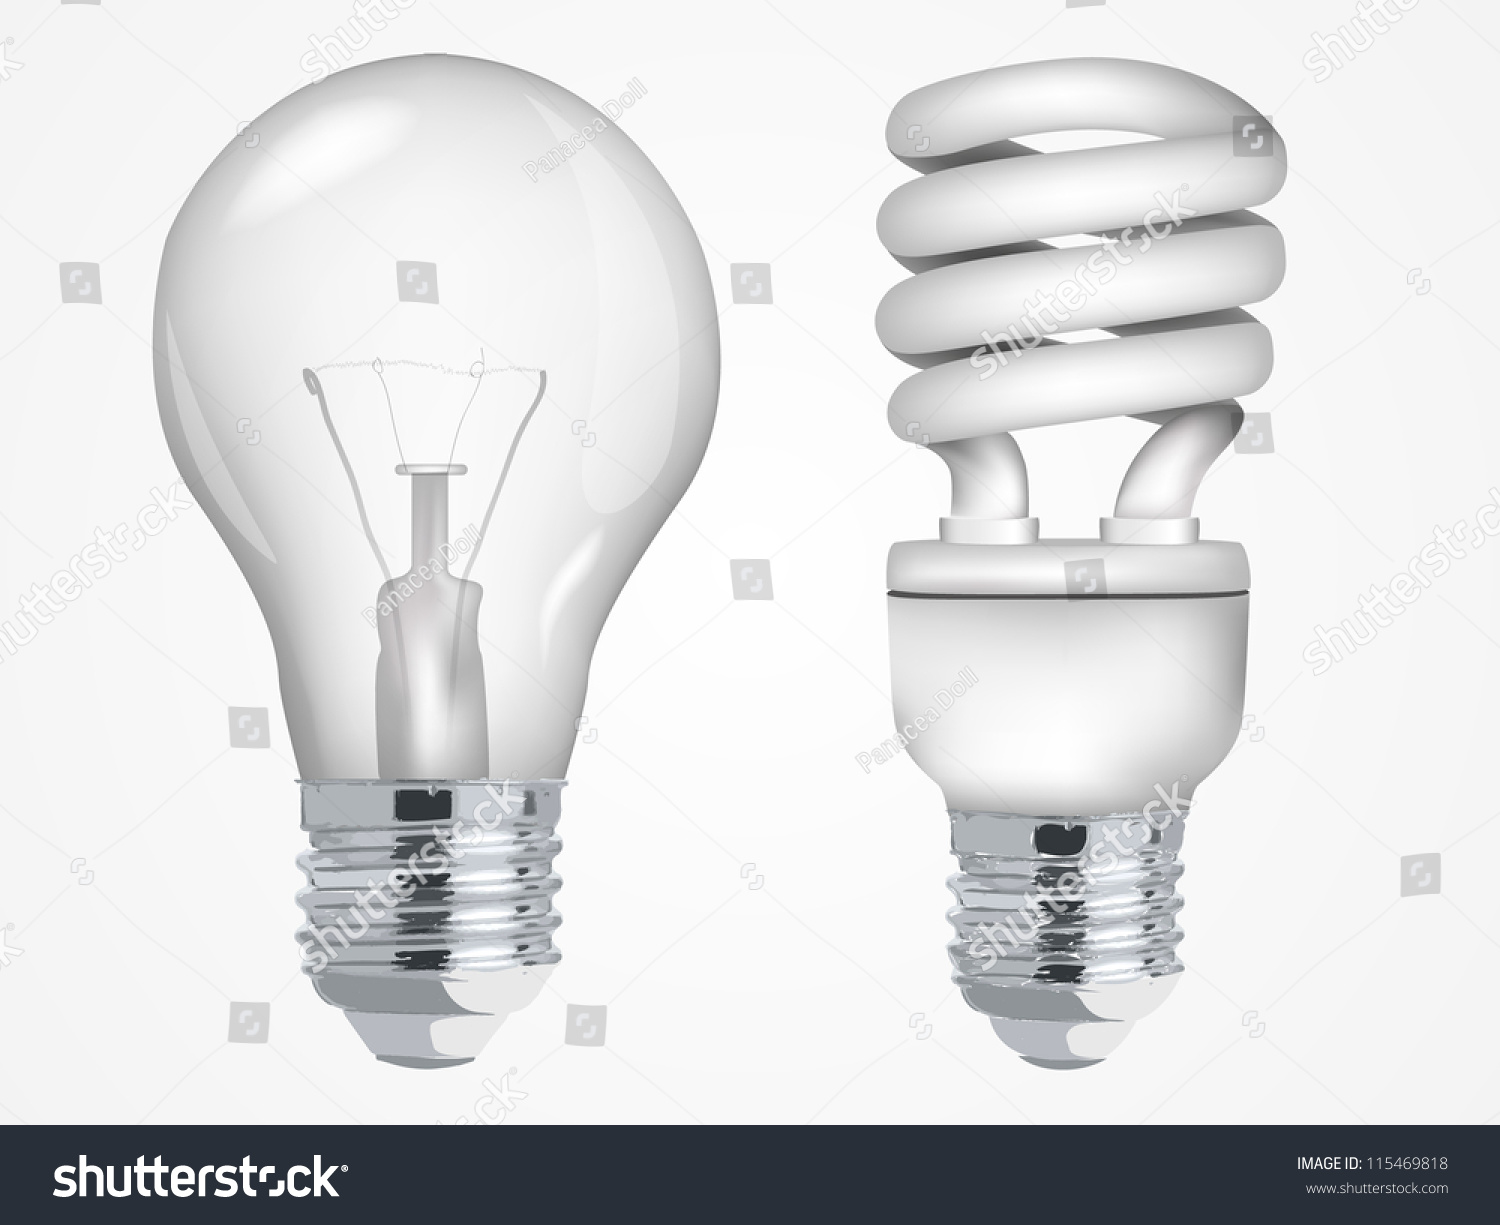 Incandescent Lamp Symbol Incandescent Fluorescent Energy Saving Light Bulbs Stock